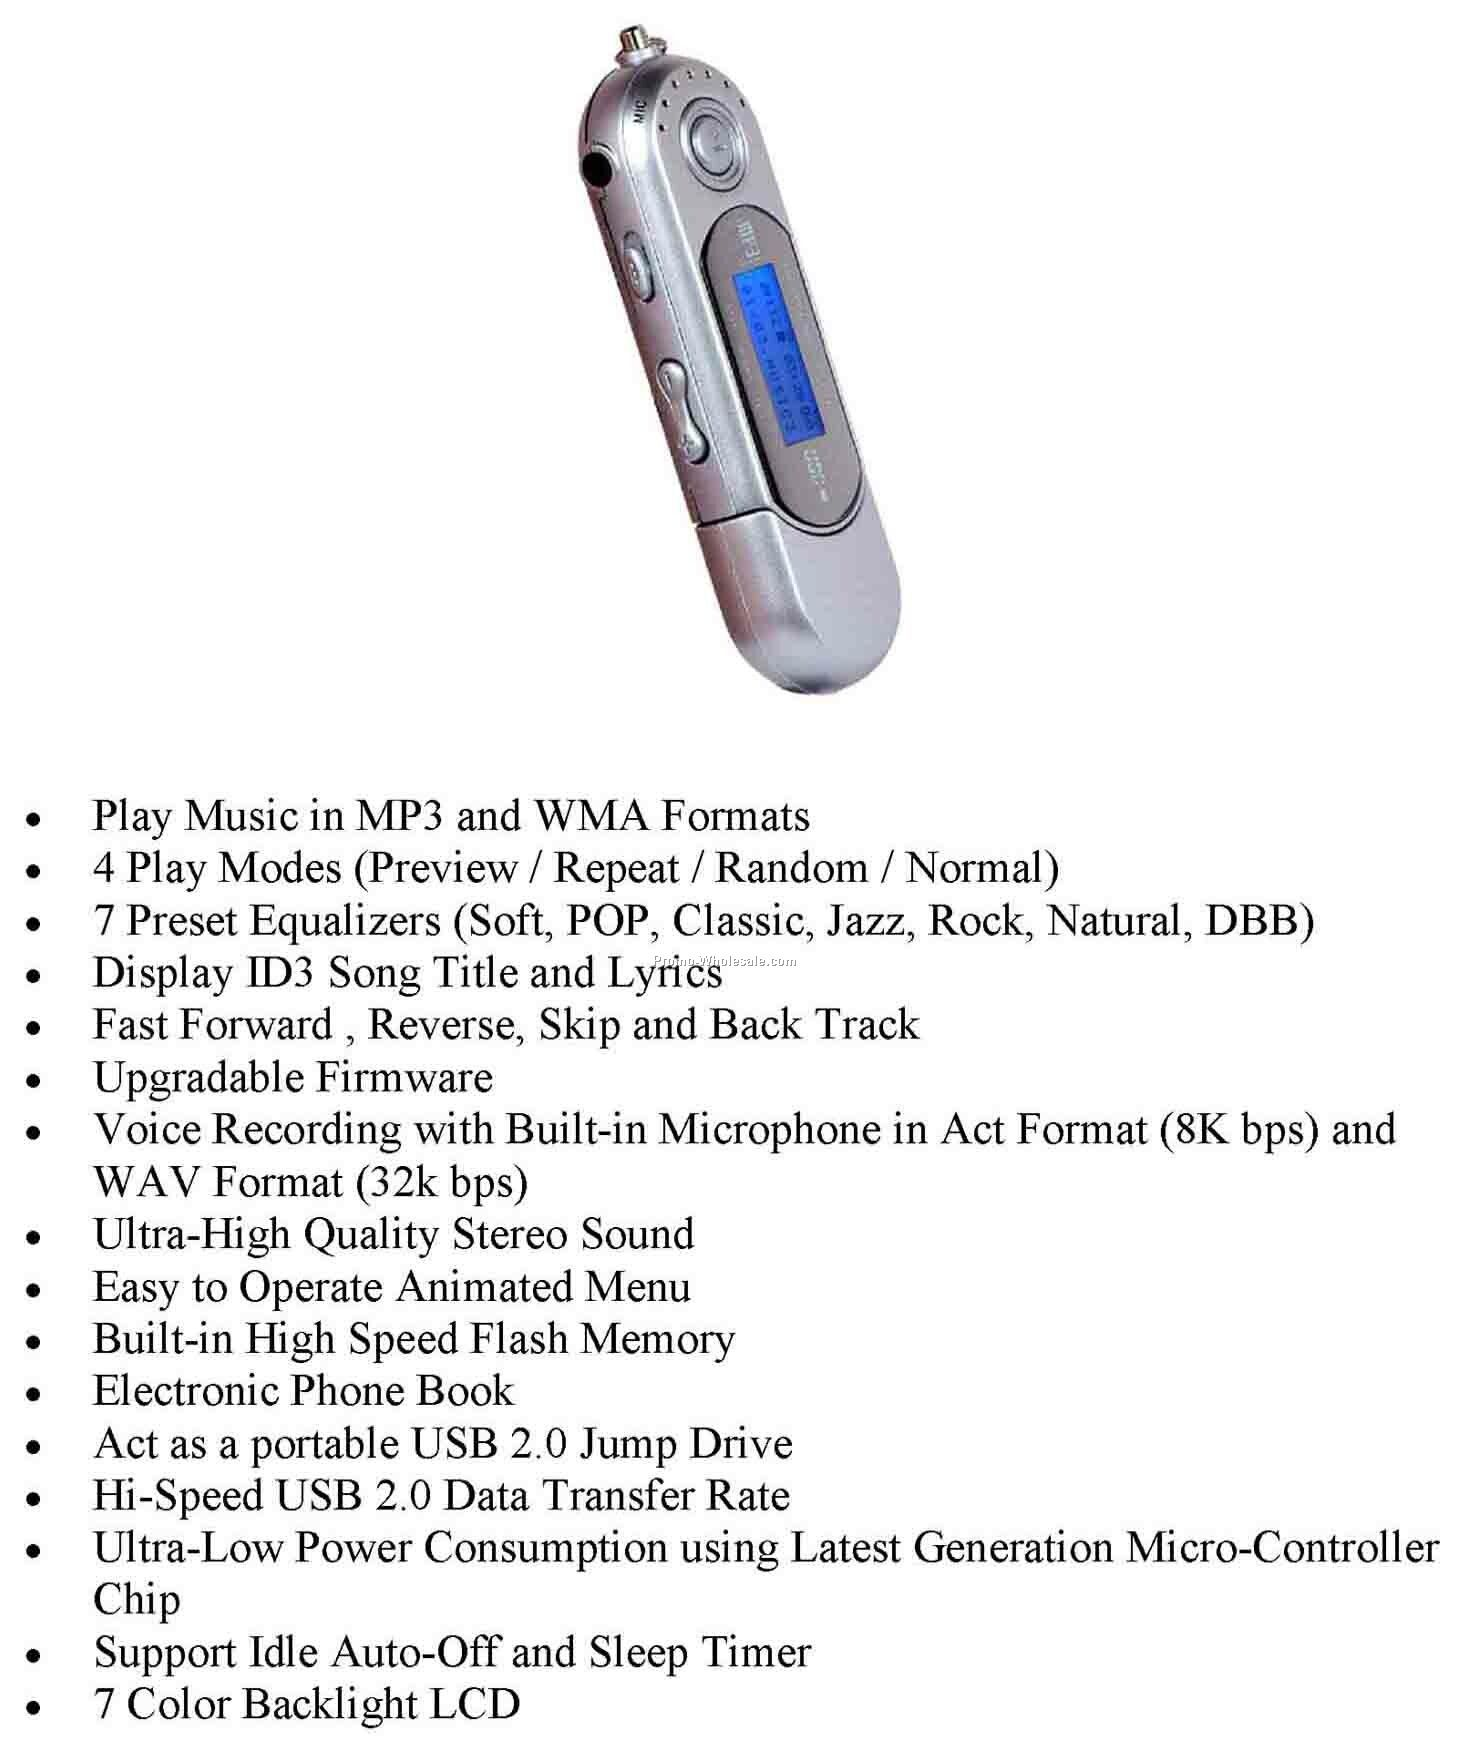 2 Gb Memory Mp3 Player, Flash Drive, Voice Recorder